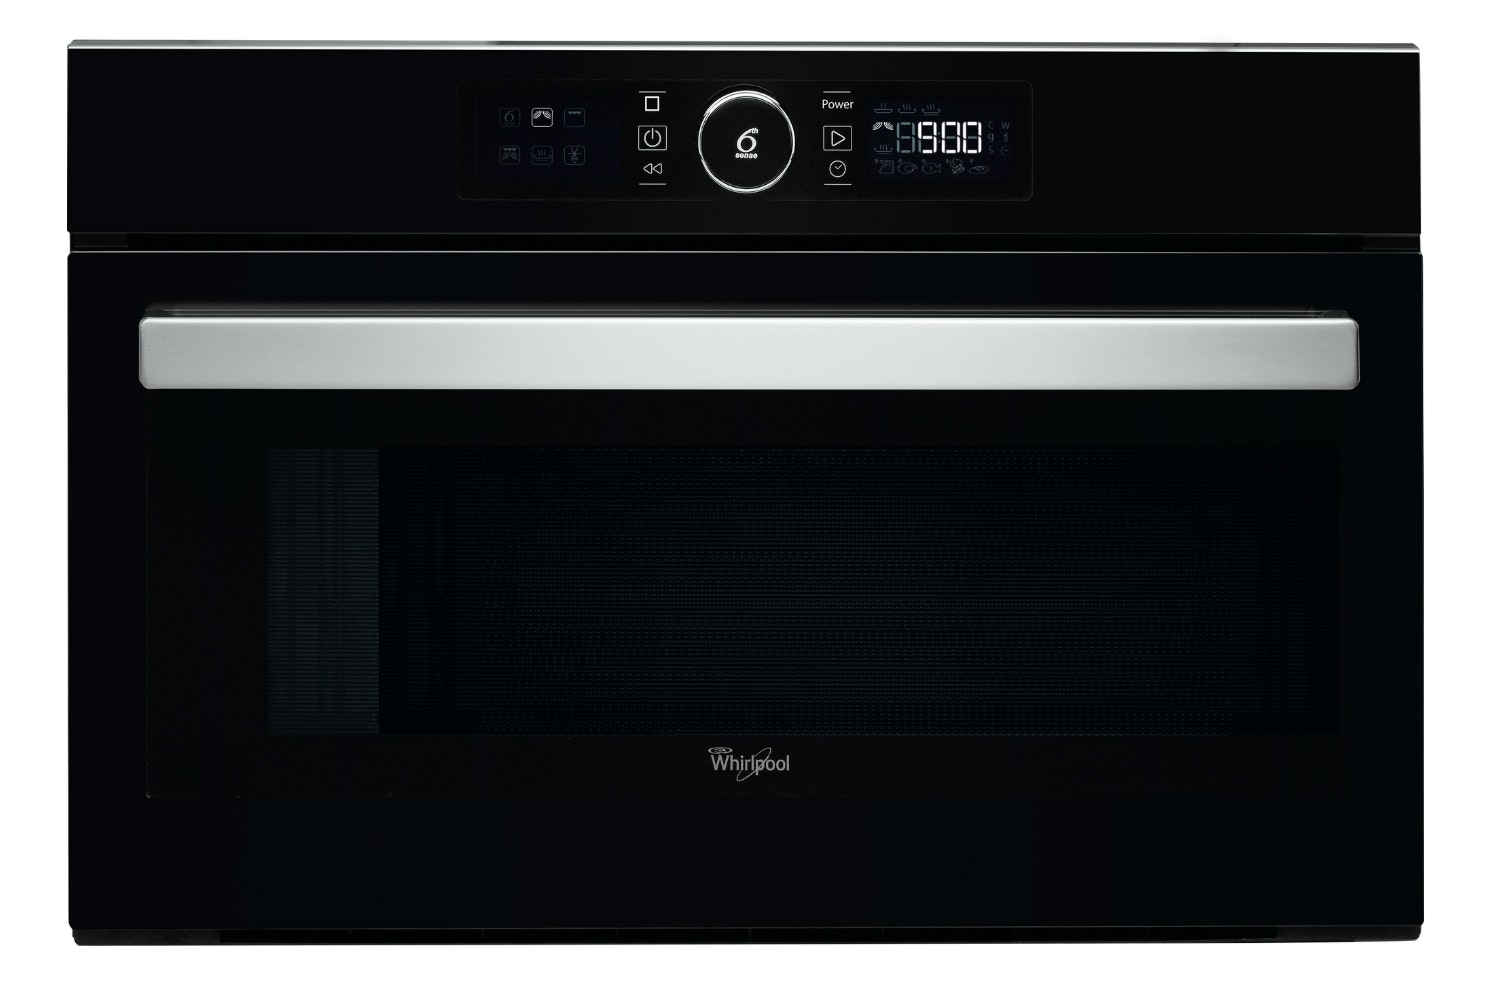 Whirlpool 31L 1000W Built In Microwave | Black